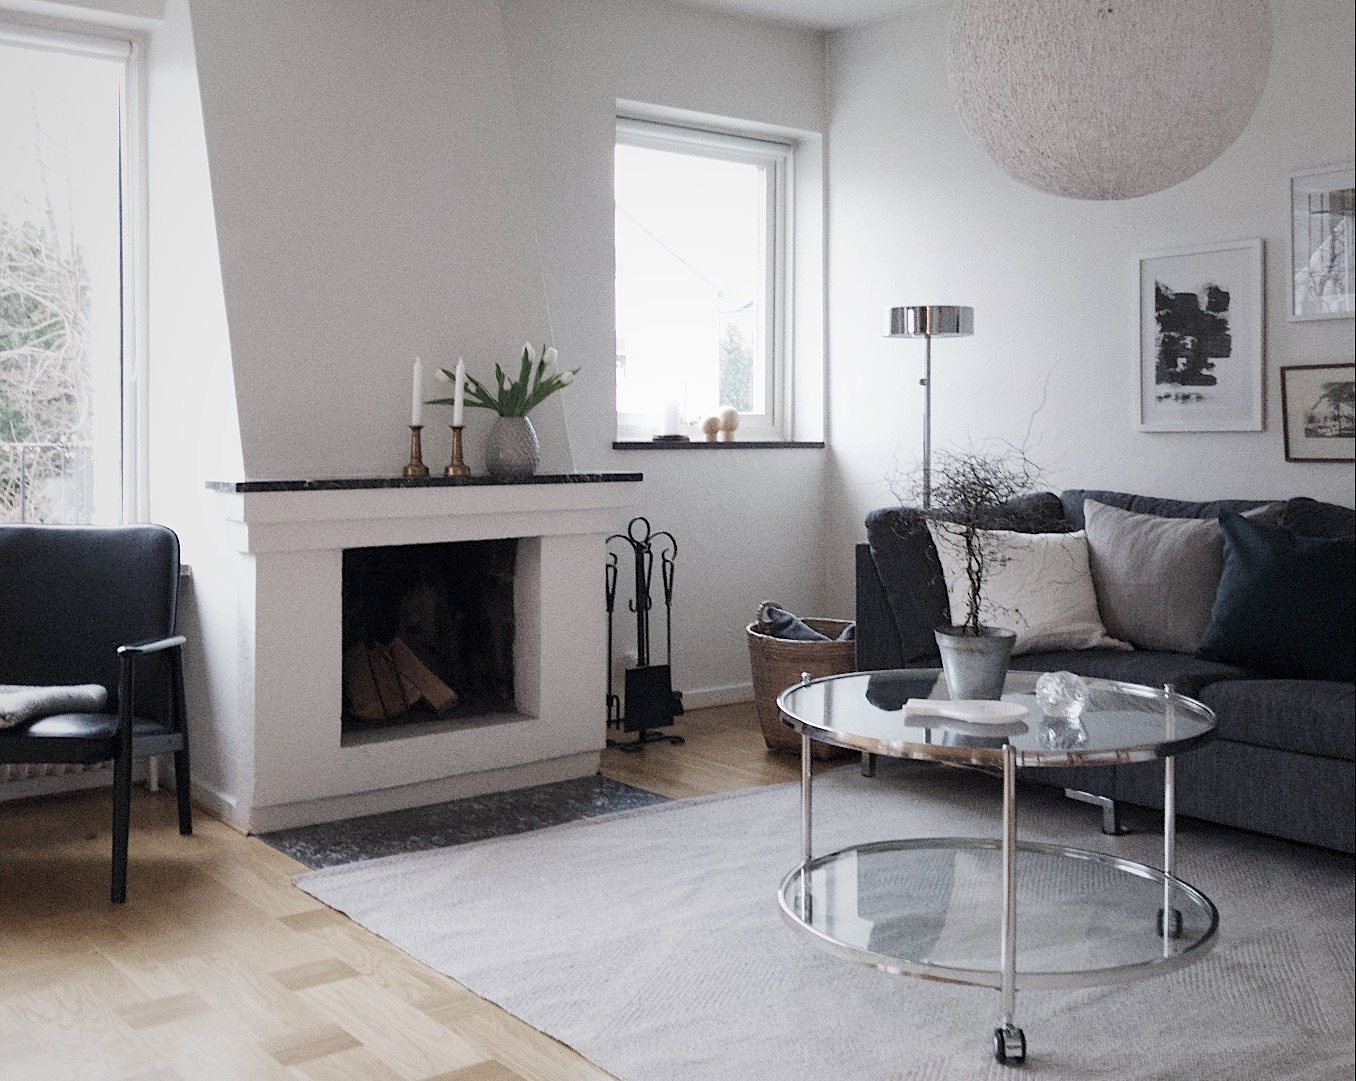 Homestyling, Göteborg, Studio In, Öppenspis, Funkis